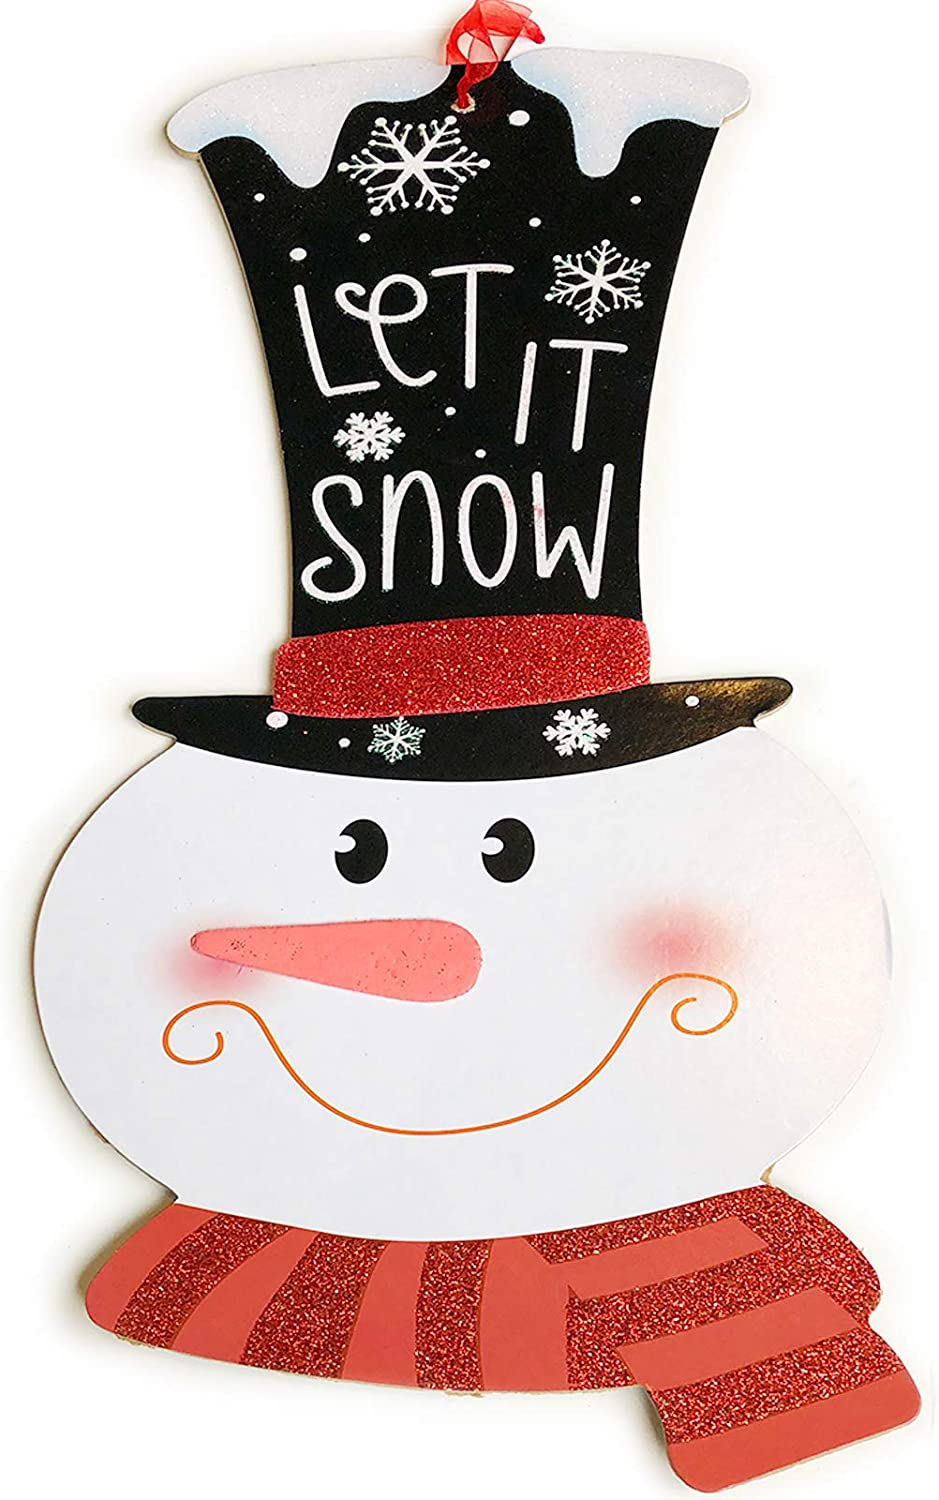 "Hemmet Christmas Decoration Celebrate A Holiday Wooden Snowman Sign 15"" x 8"" Wood Decore Outside Porch Yard Door Decorative Hanger Plaque Home Party Indoor Outdoor X-mas Living Room Hanging Decor"